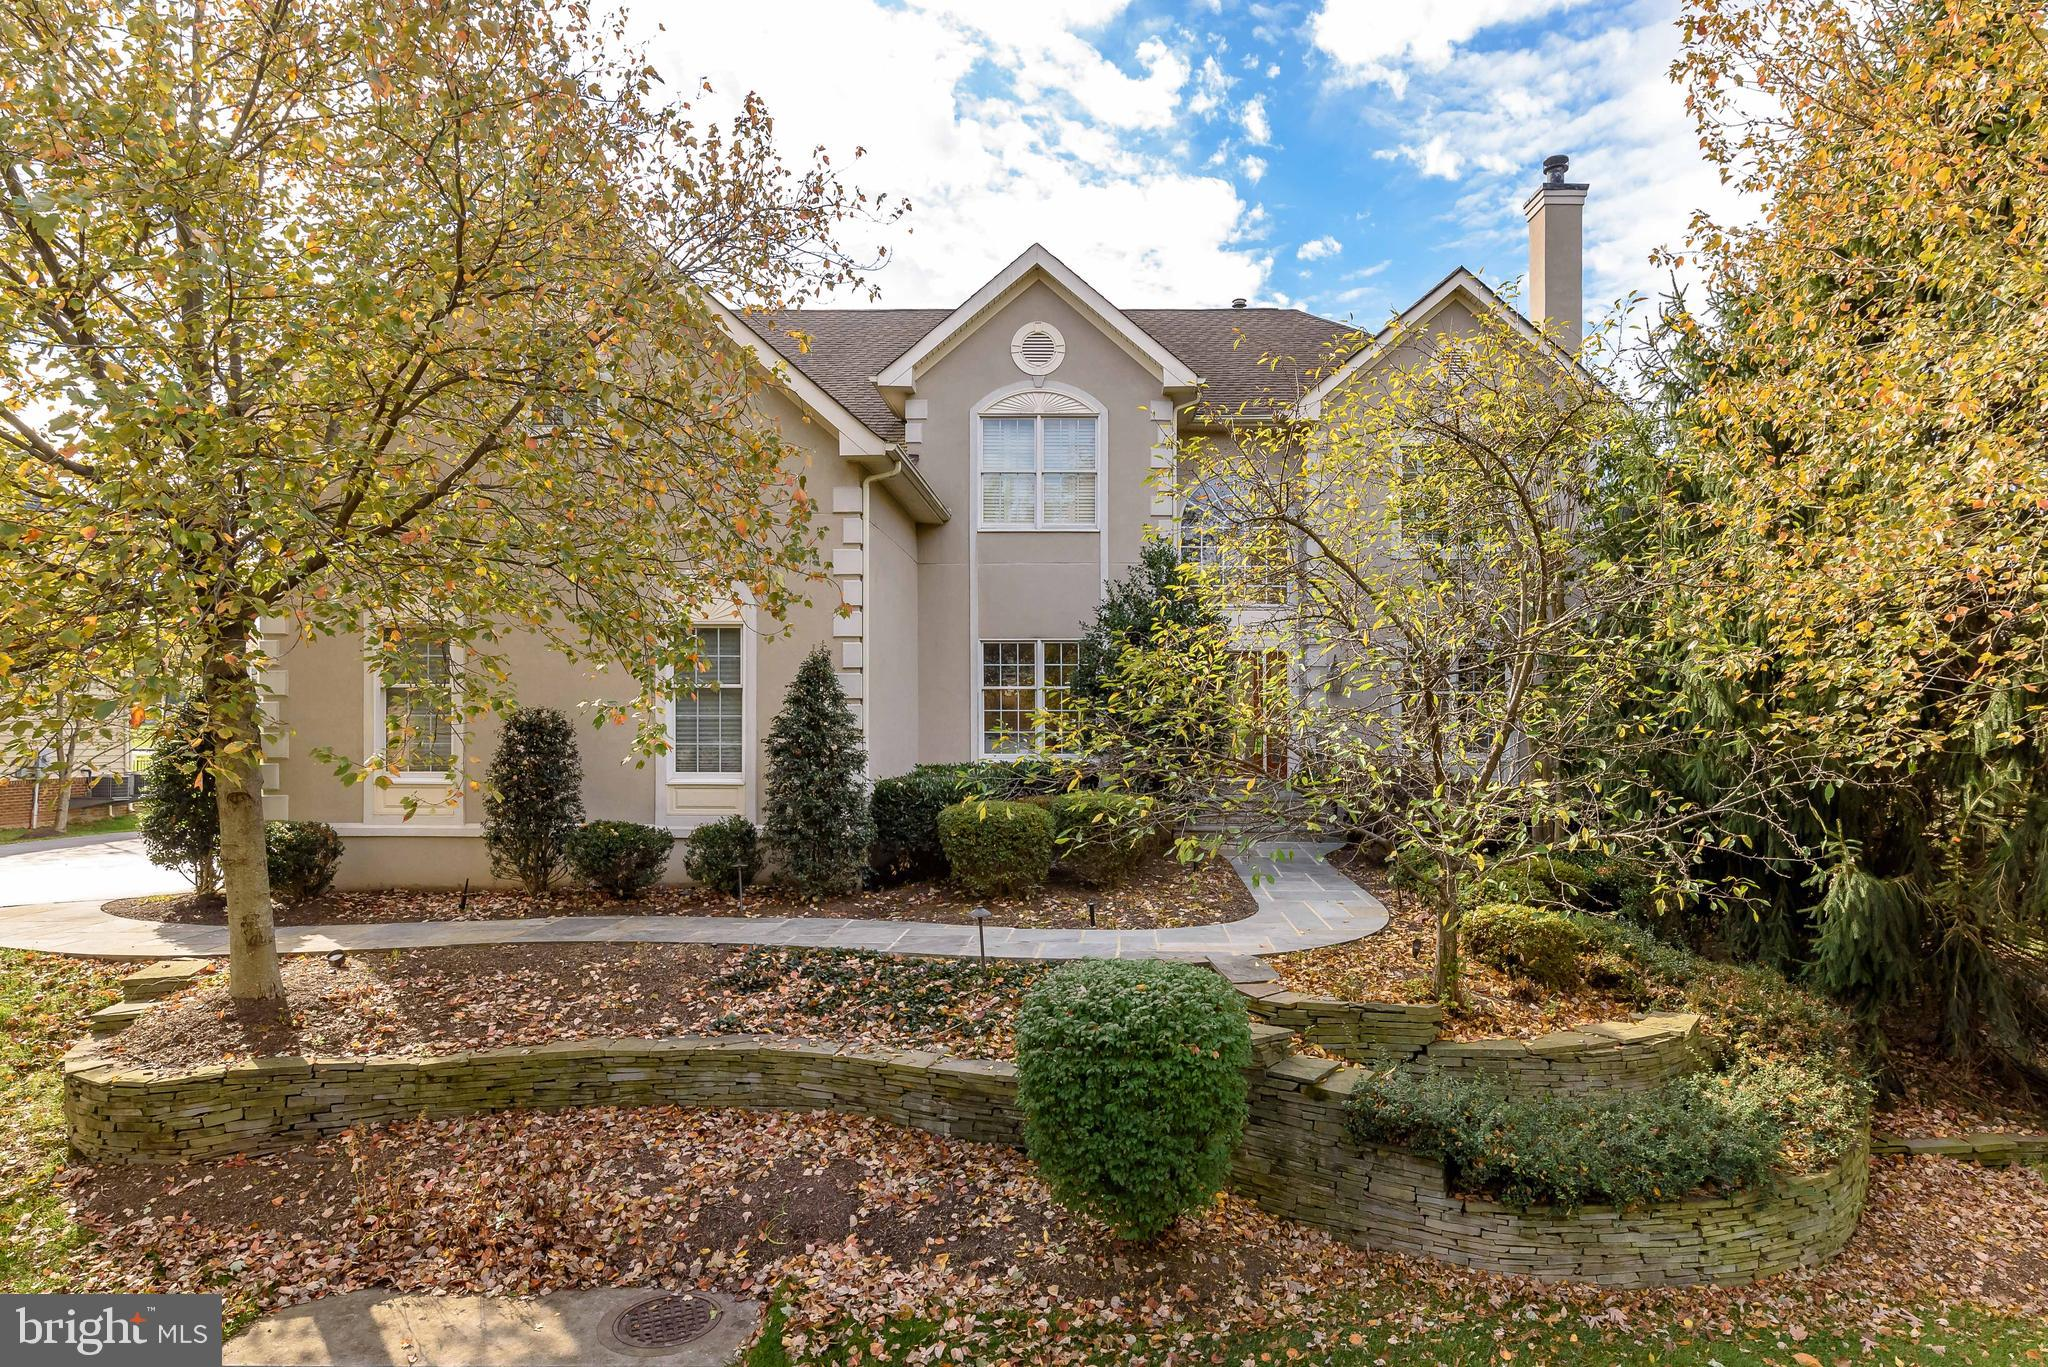 """Stunning 4 bedroom/4.5 bath home from the """"Executives Collection"""" with 3 car side-load garage in Bel"""